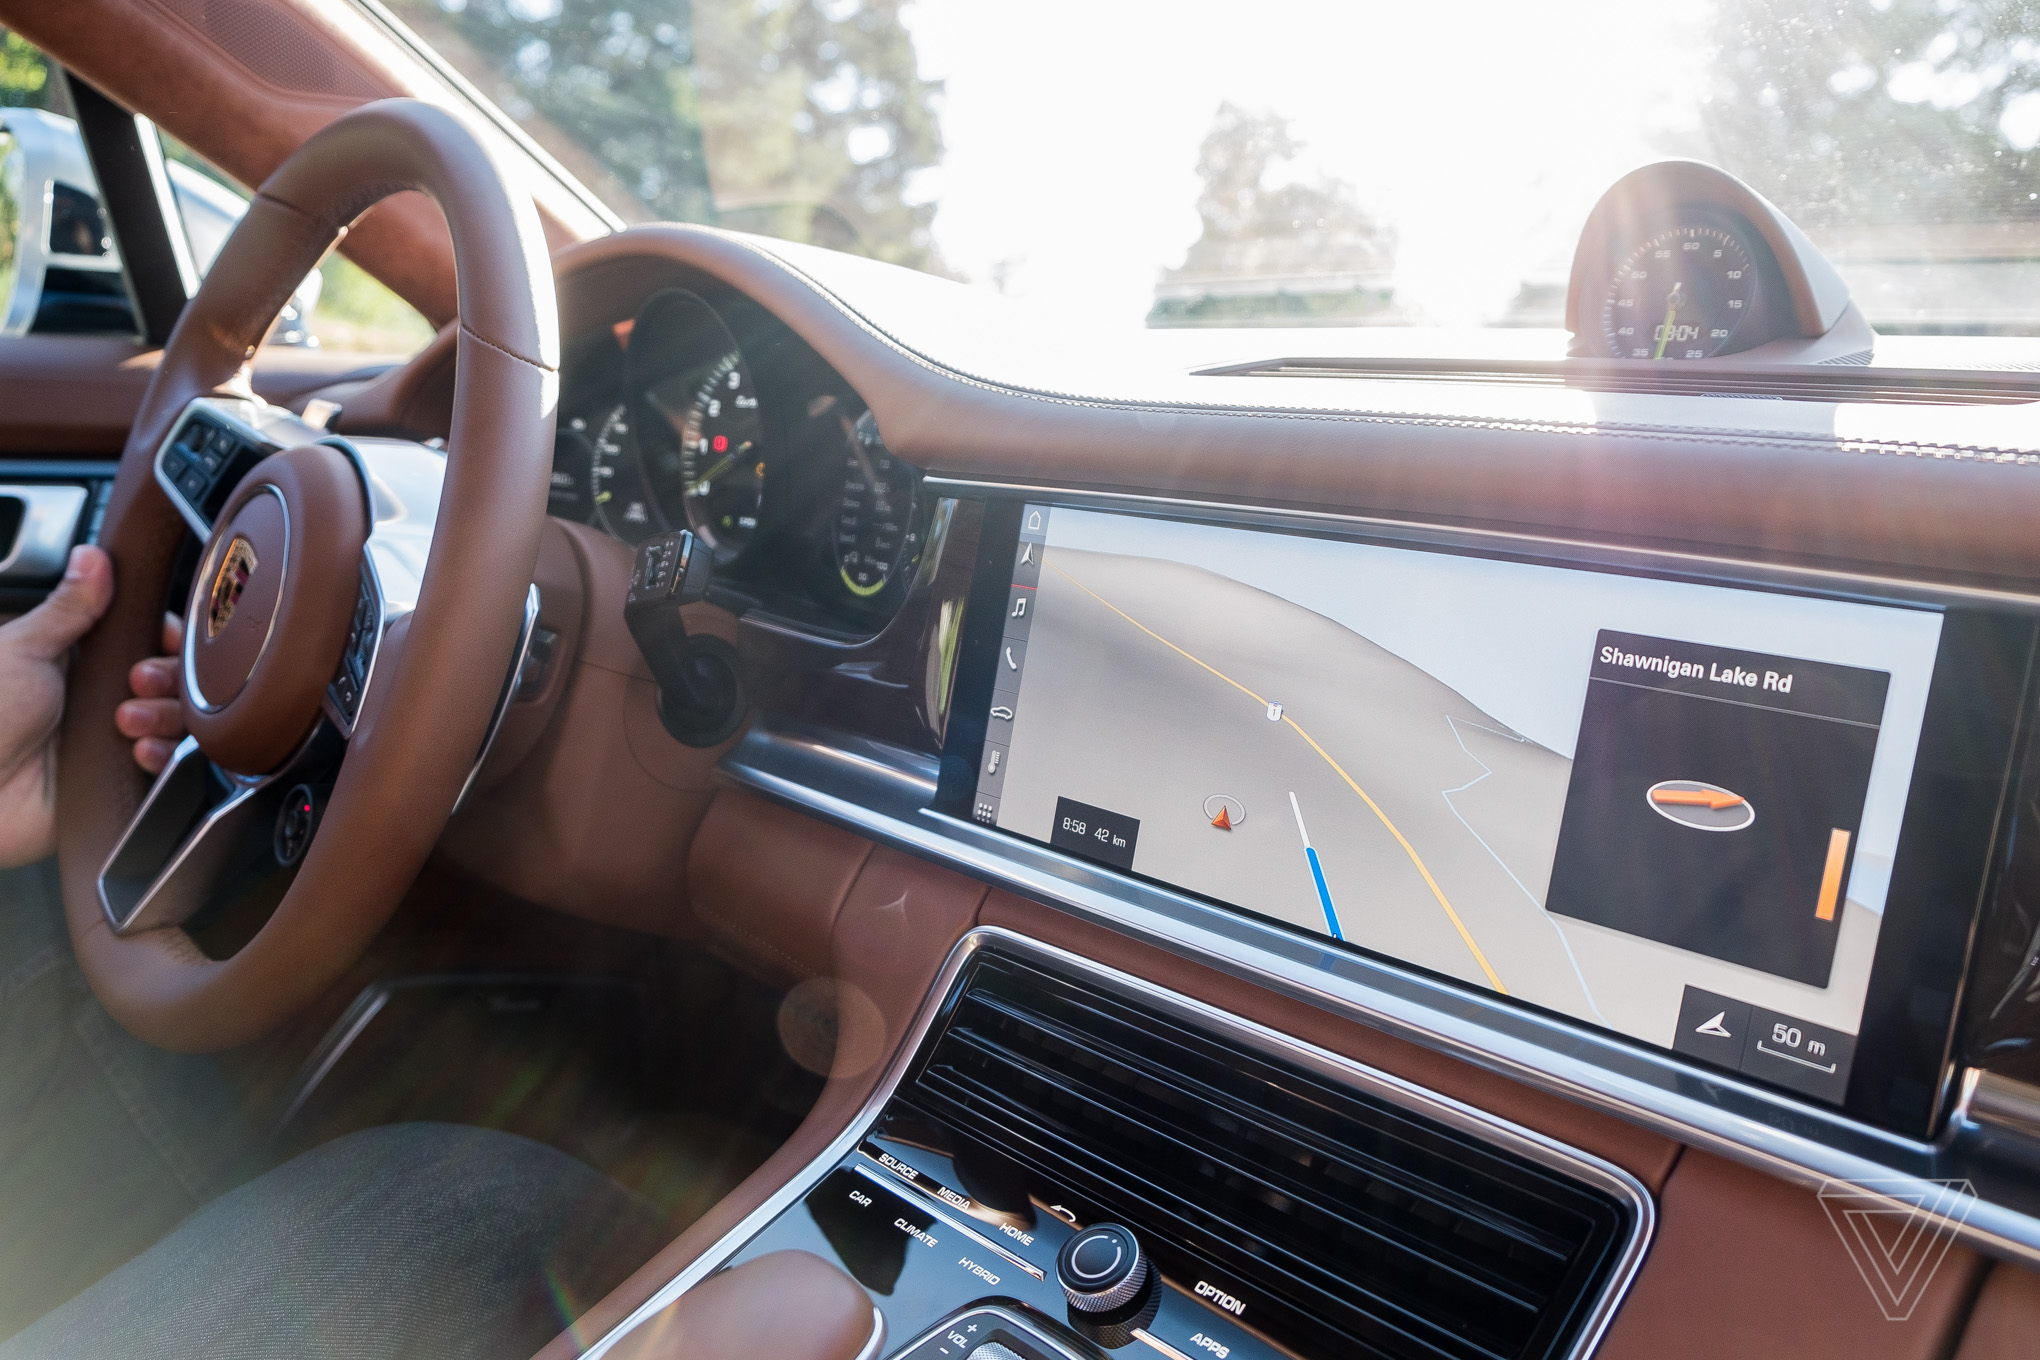 2018 porsche panamera turbo s e hybrid. fine porsche the turbo s ehybrid might look like itu0027s best suited to haul groceries  but it also absolutely hauls ass inside 2018 porsche panamera turbo s e hybrid